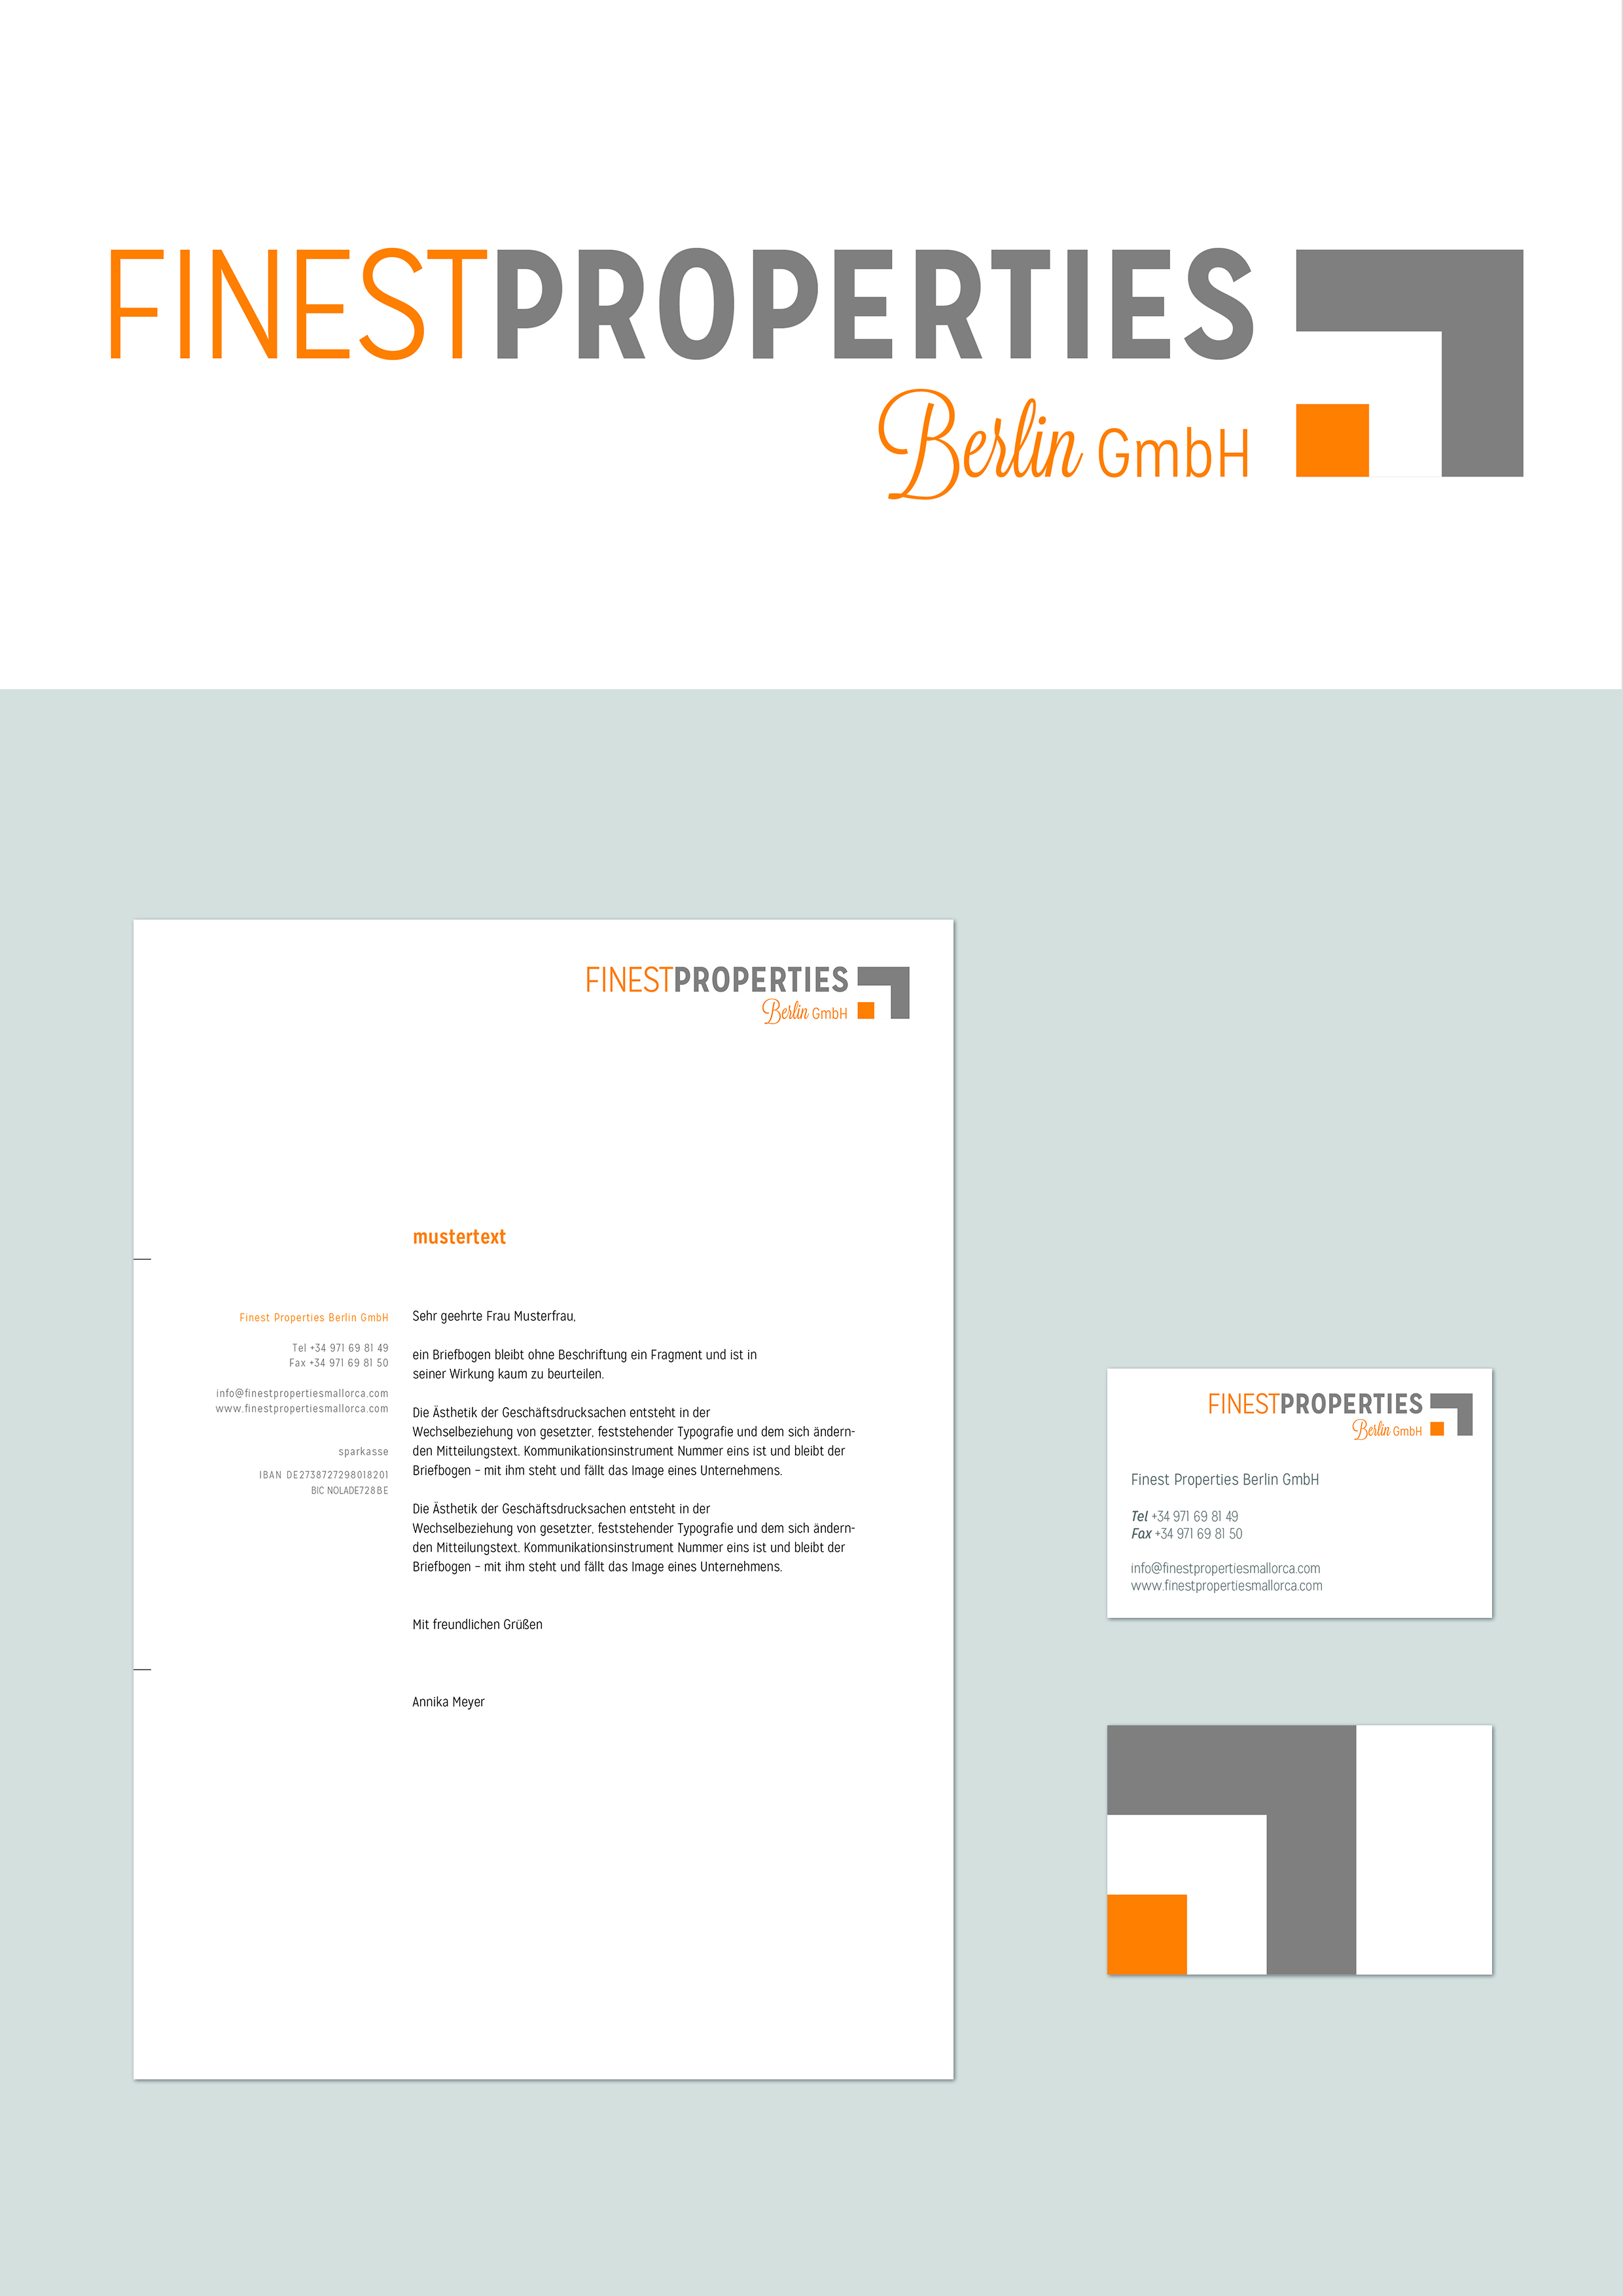 Finest Properties Berlin Gmbh Corporate Design Package